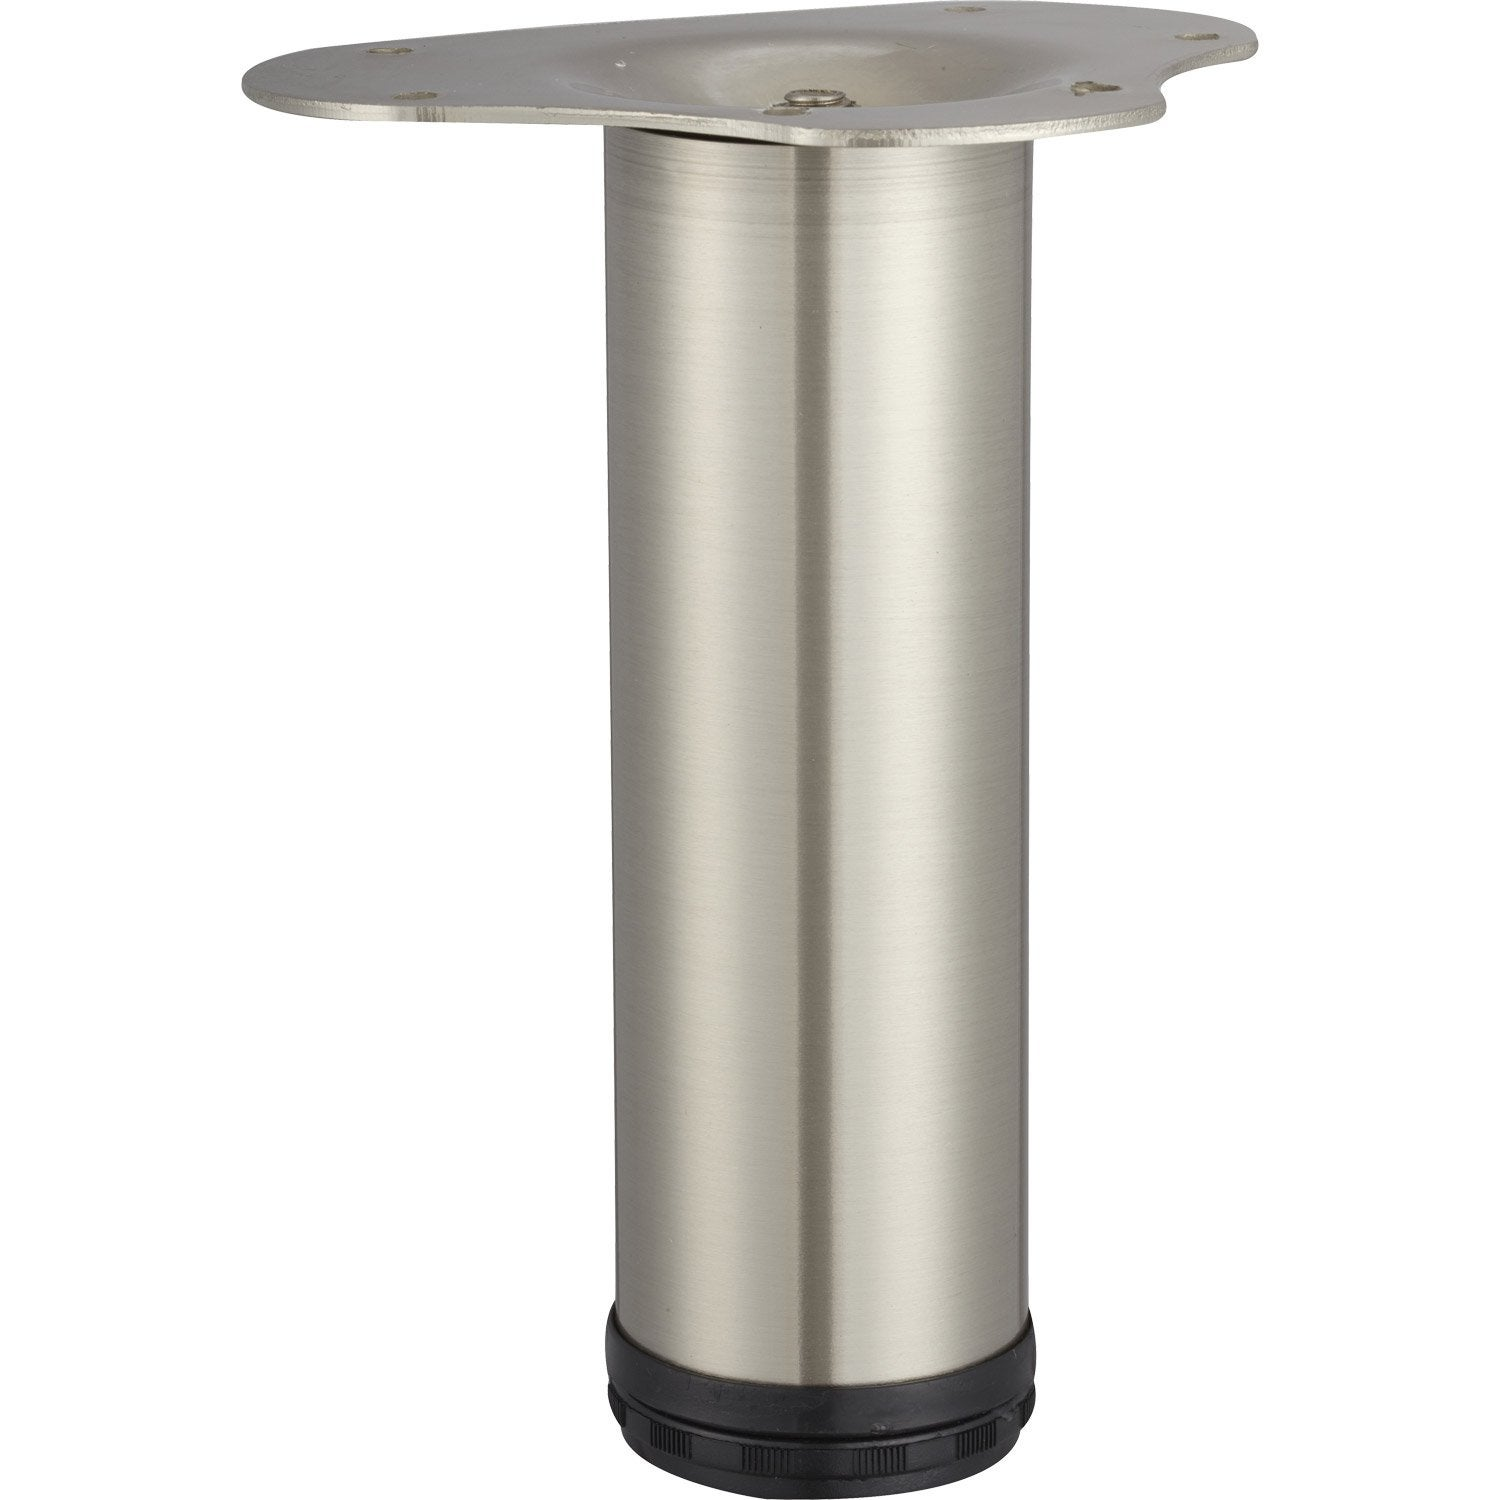 Pied de table basse cylindrique r glable acier bross gris for Pied de table cuisine